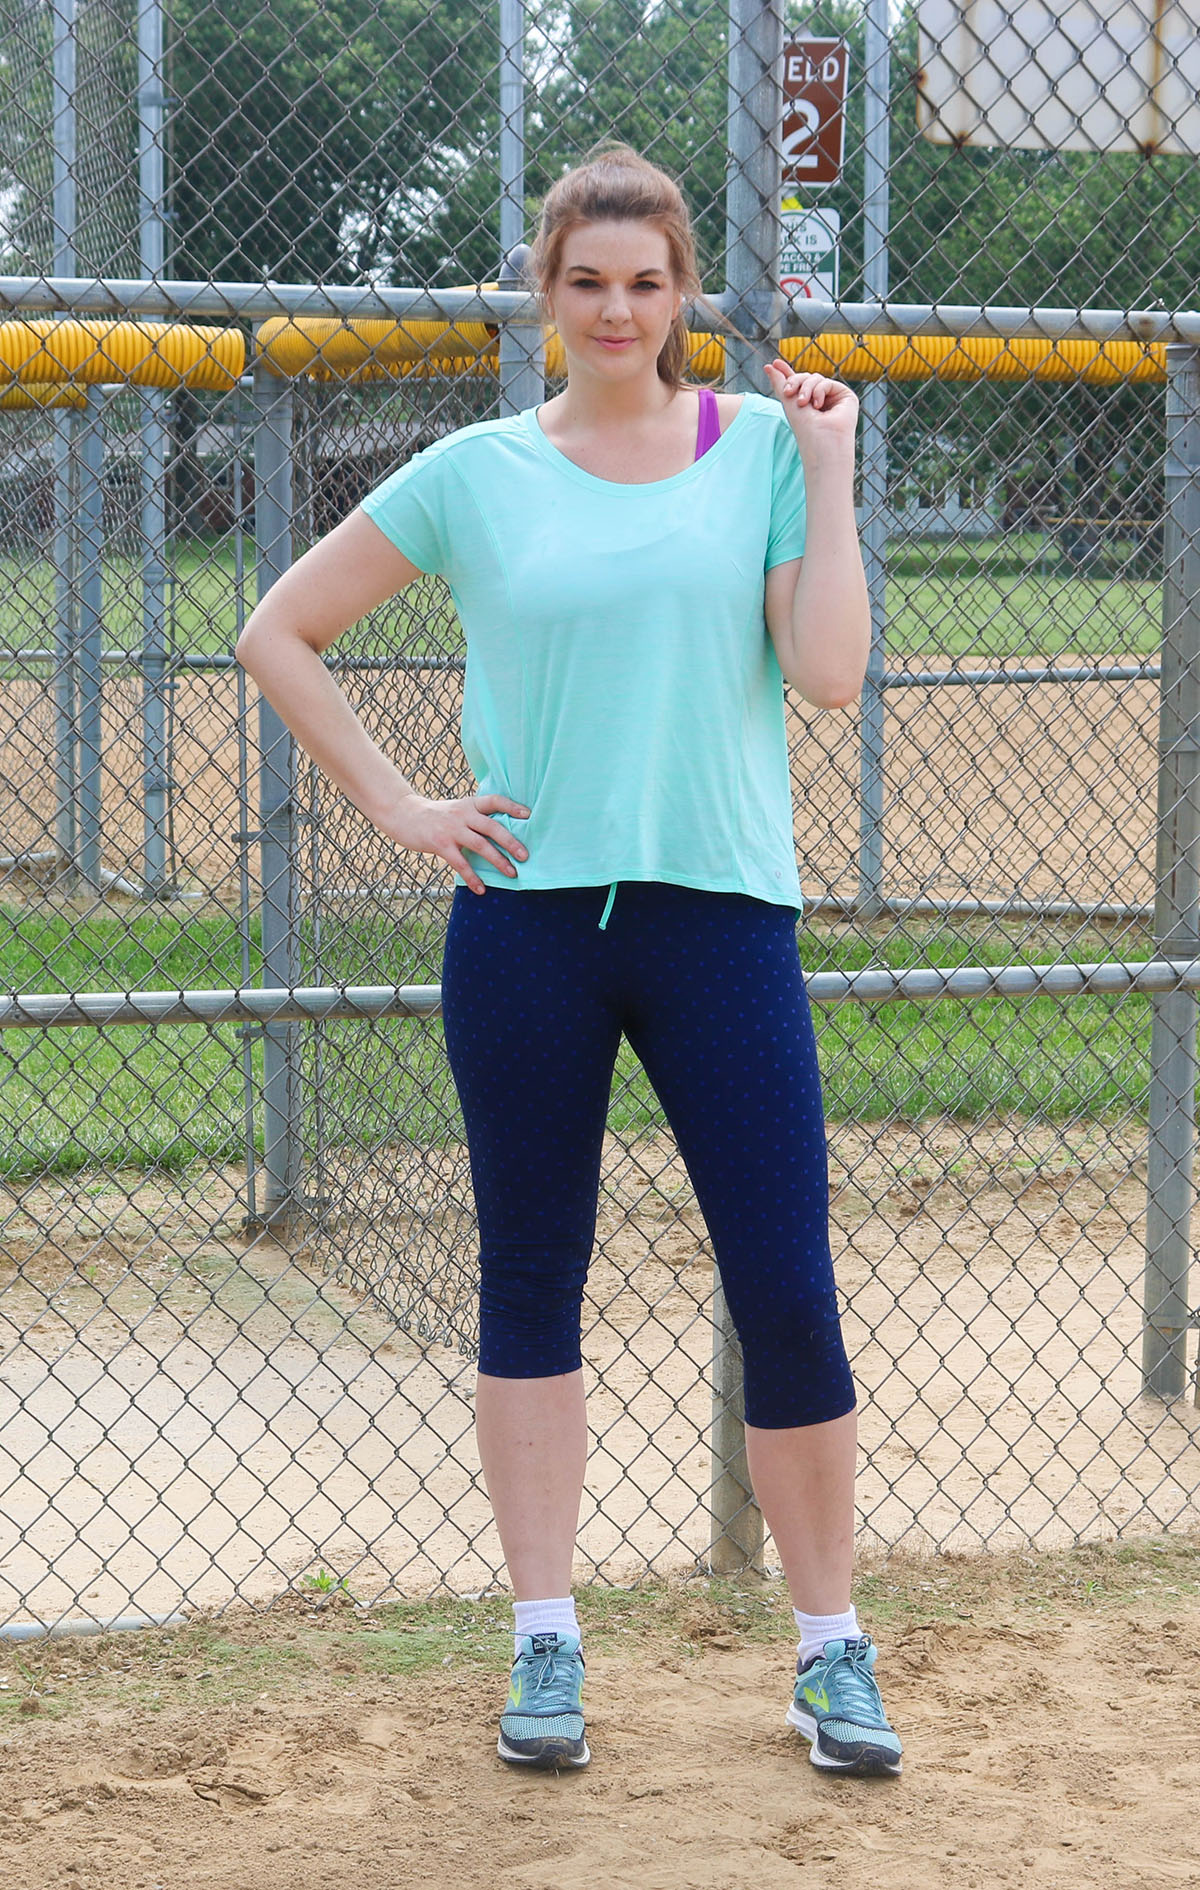 Stylish Summer Workout Outfits I DreaminLace.com #WorkoutGear #Fitness #SummerWorkout #Stylish